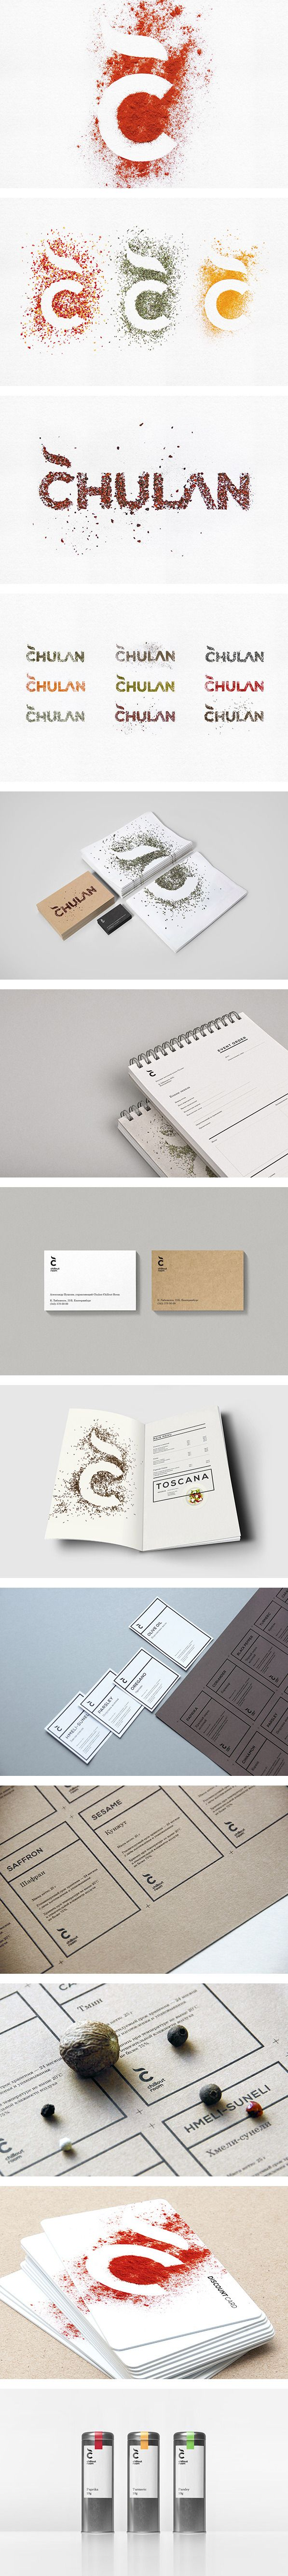 Chulan branding by Loyalty Creative Technology